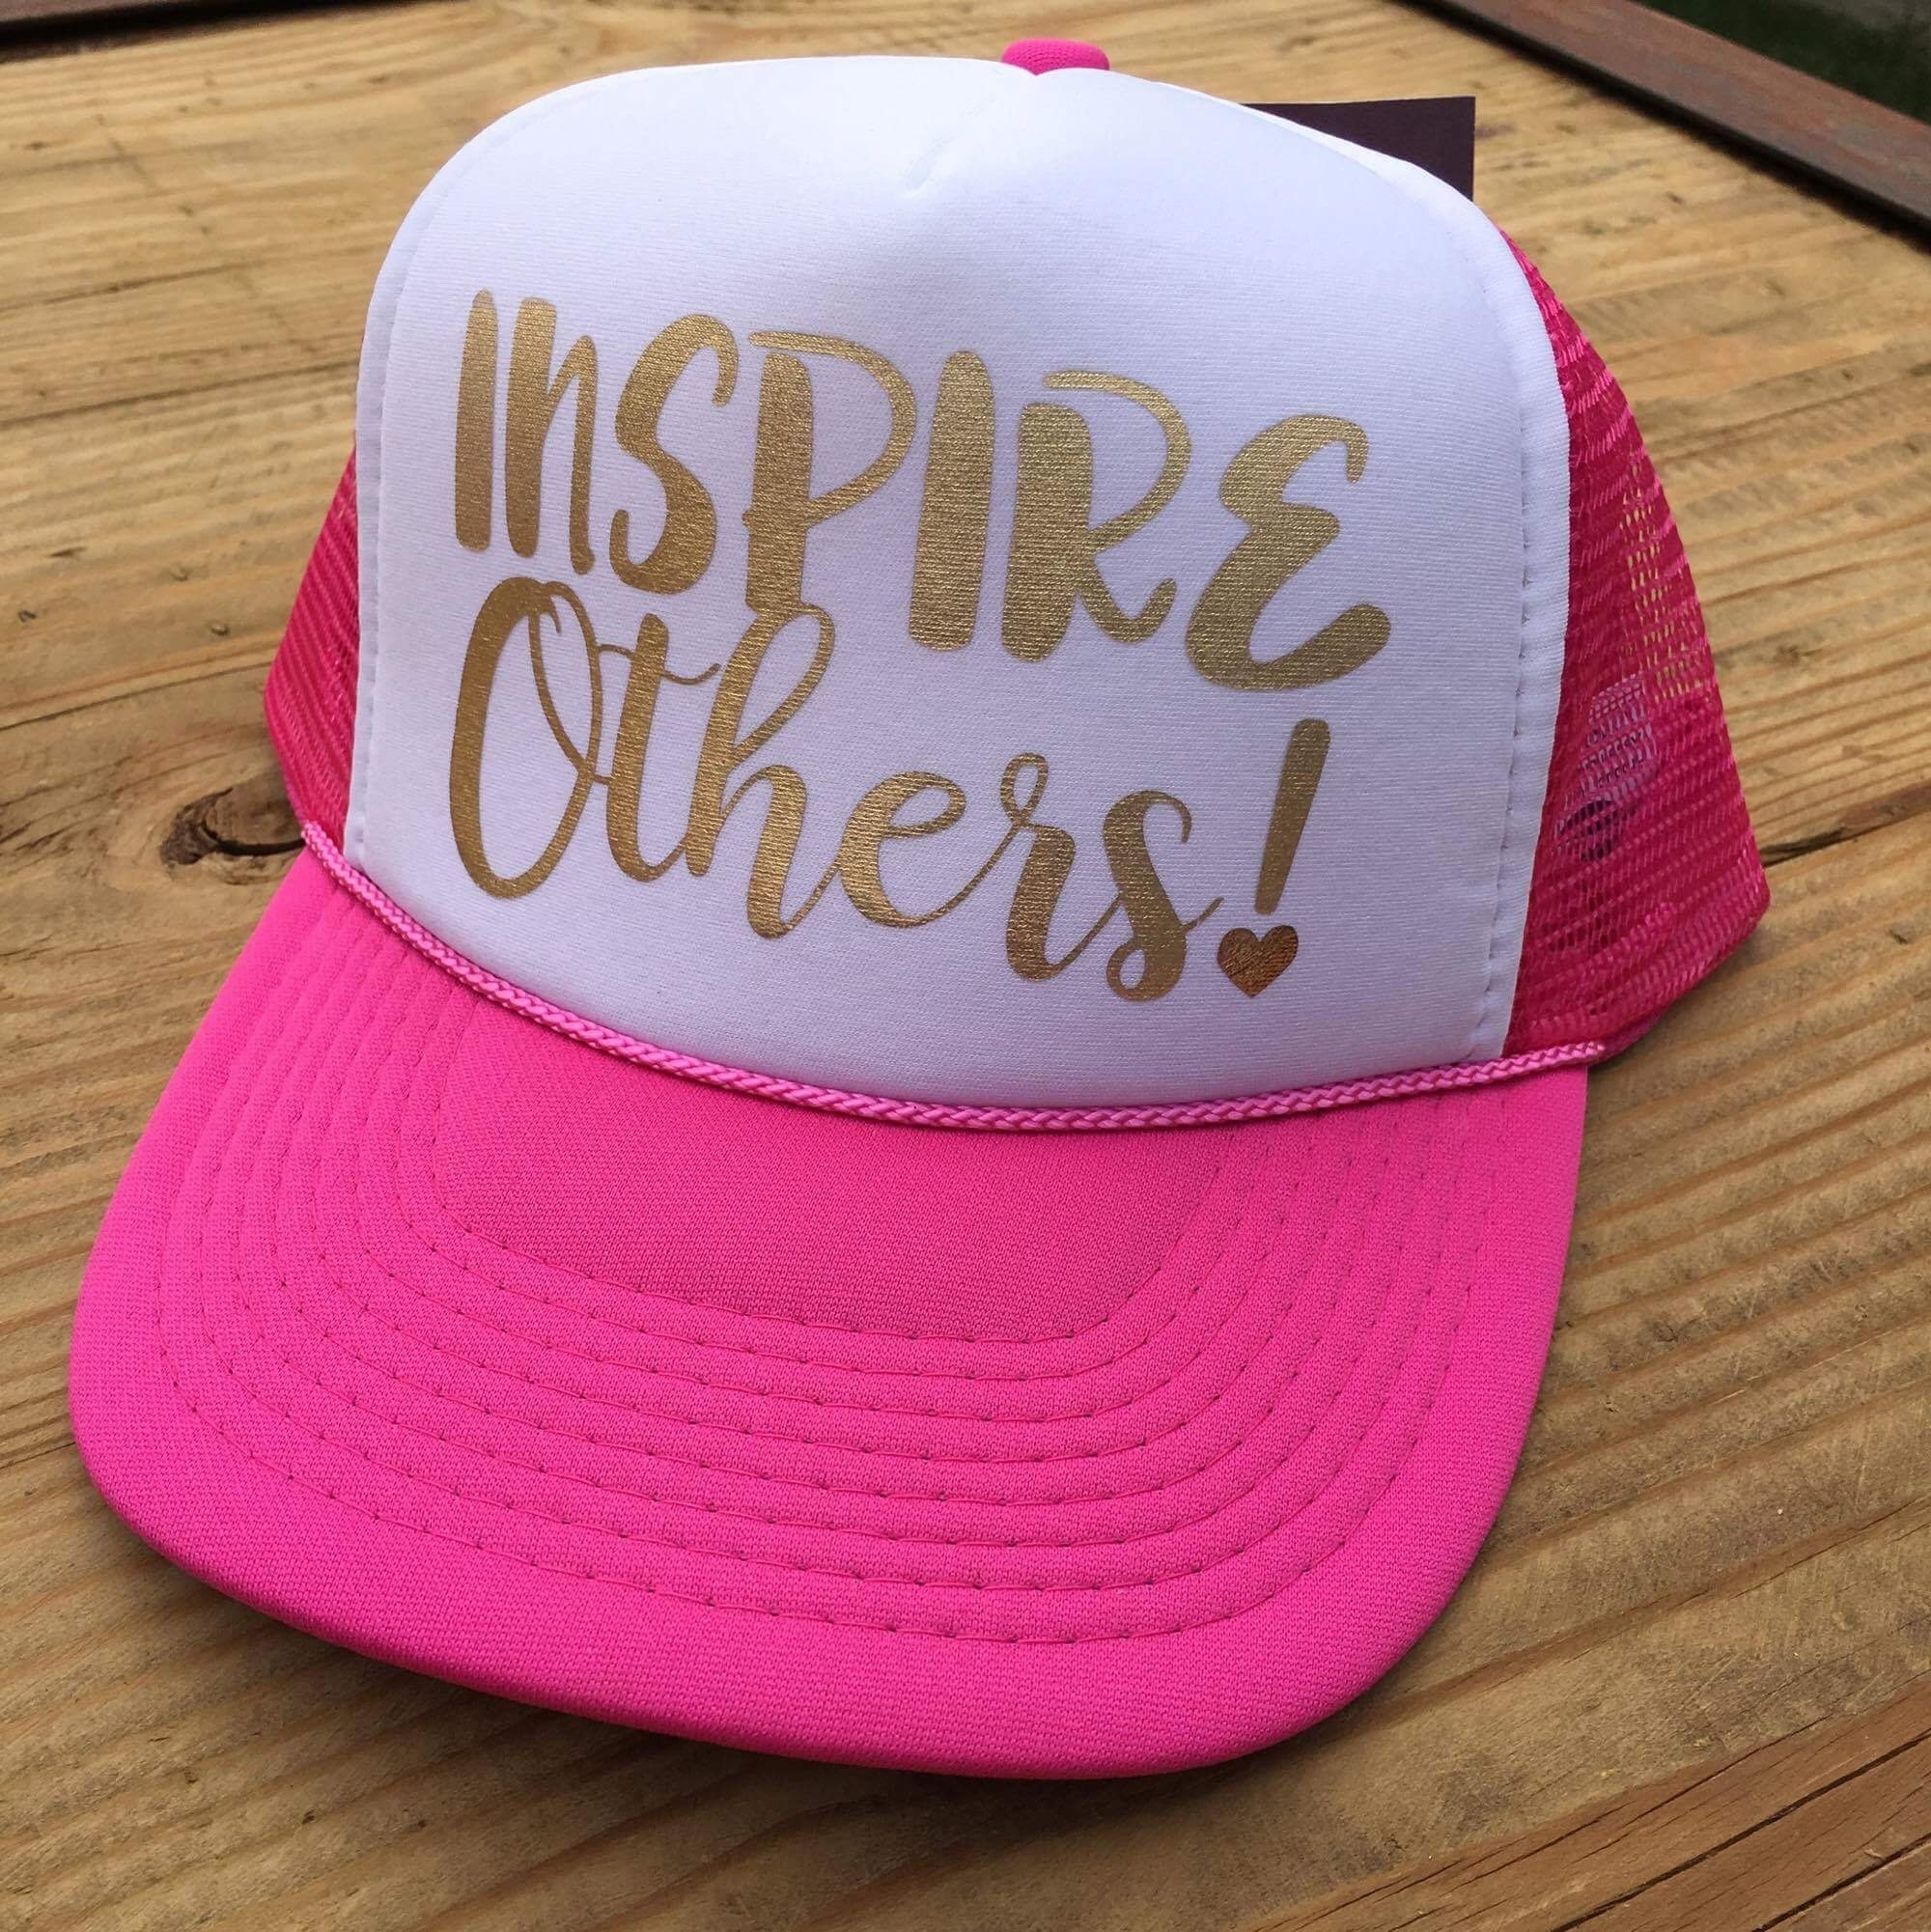 Trucker Hat - Inspire Others 00002